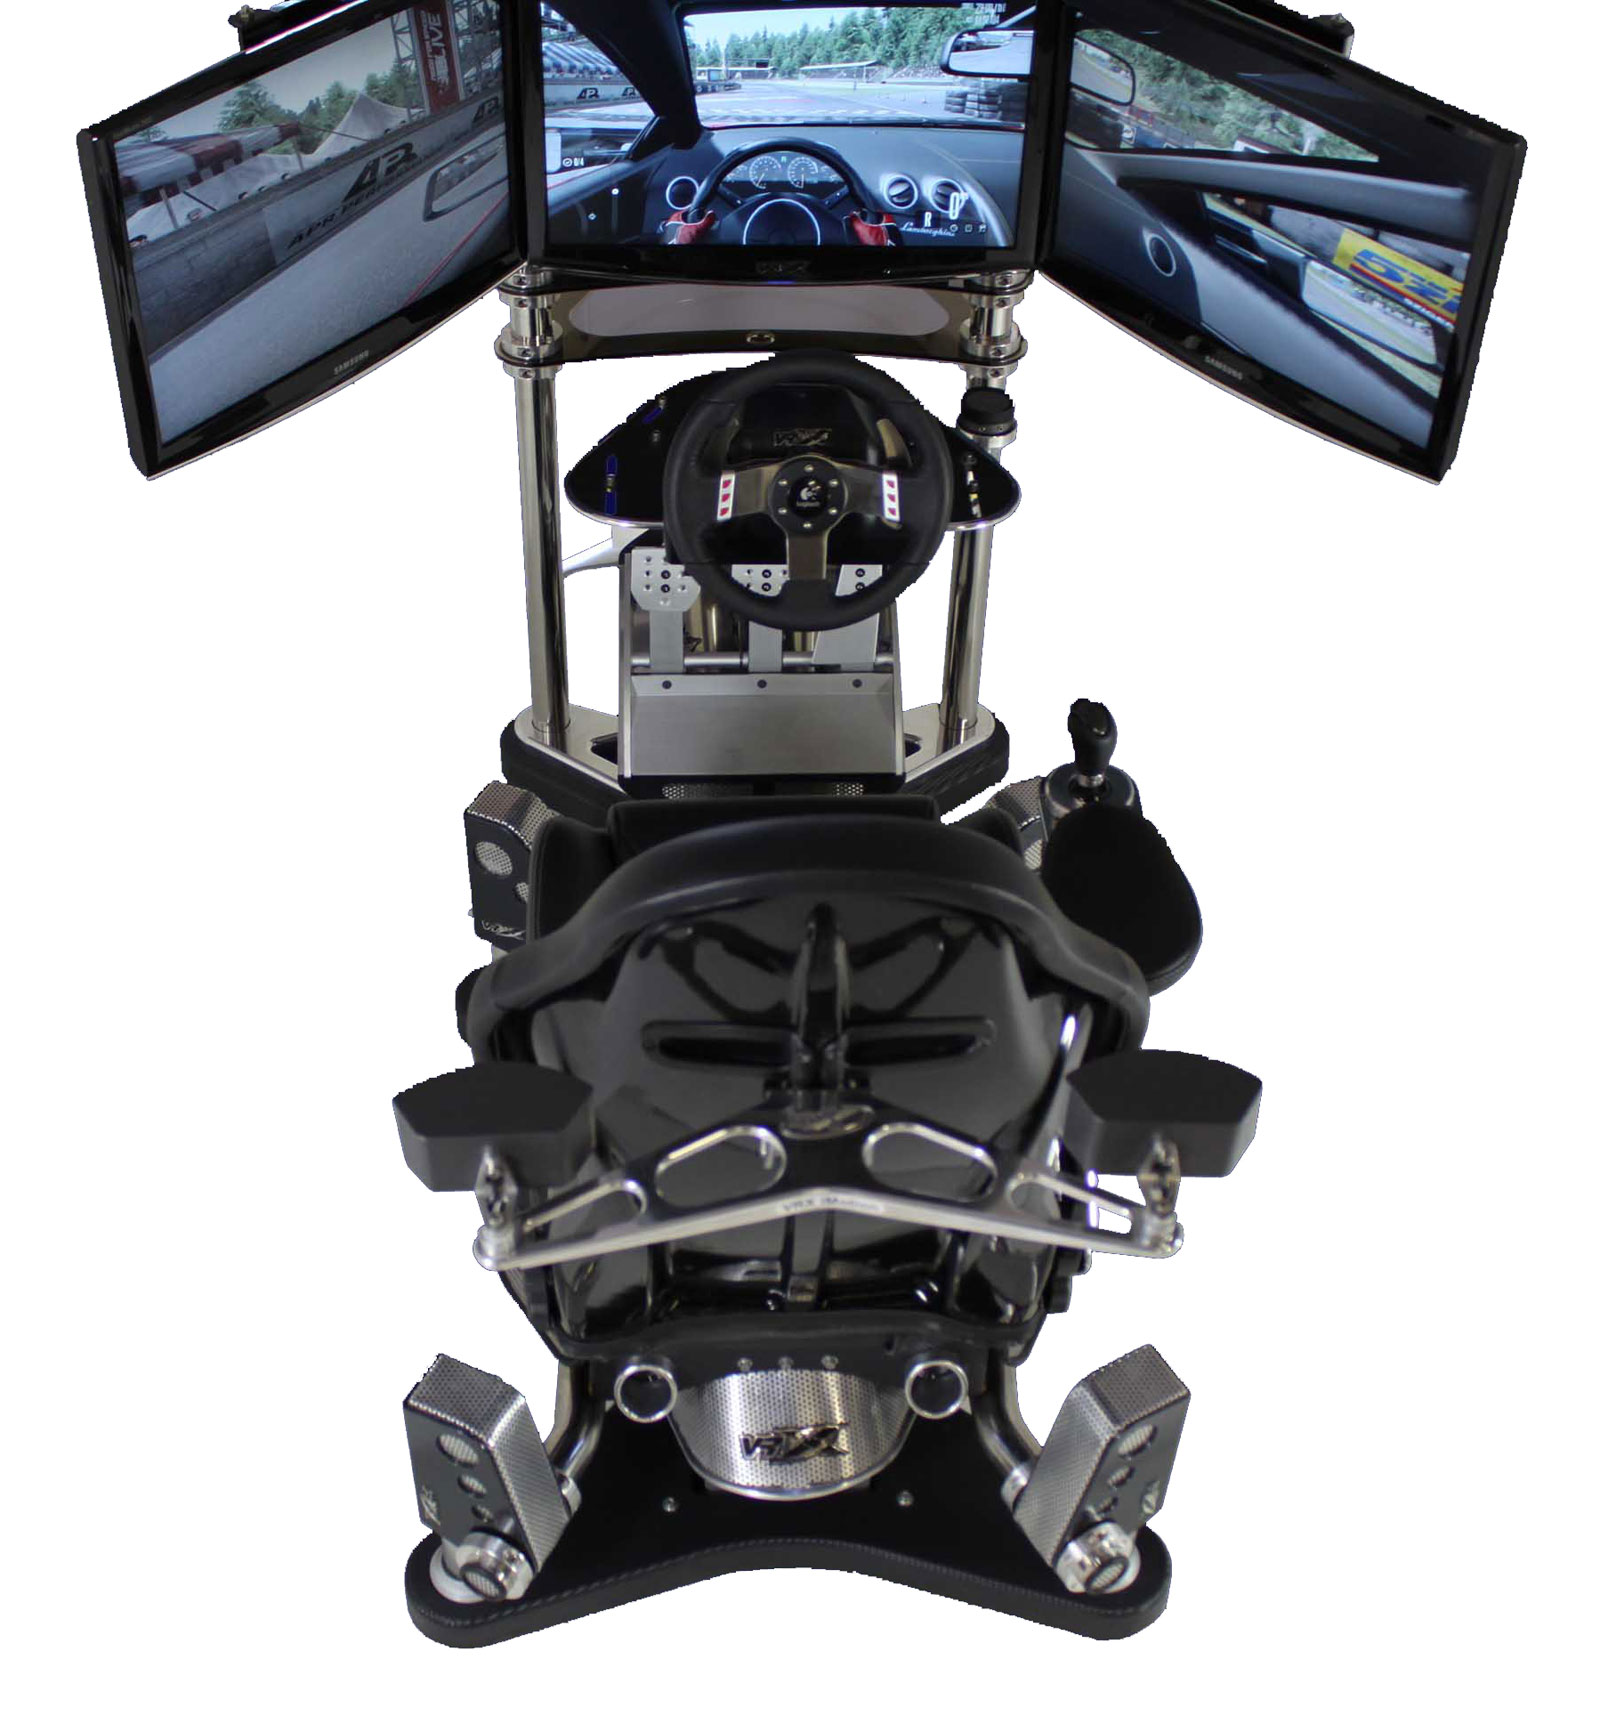 Vrx Imotion 3d Full Motion Racing Simulator Add A Whole